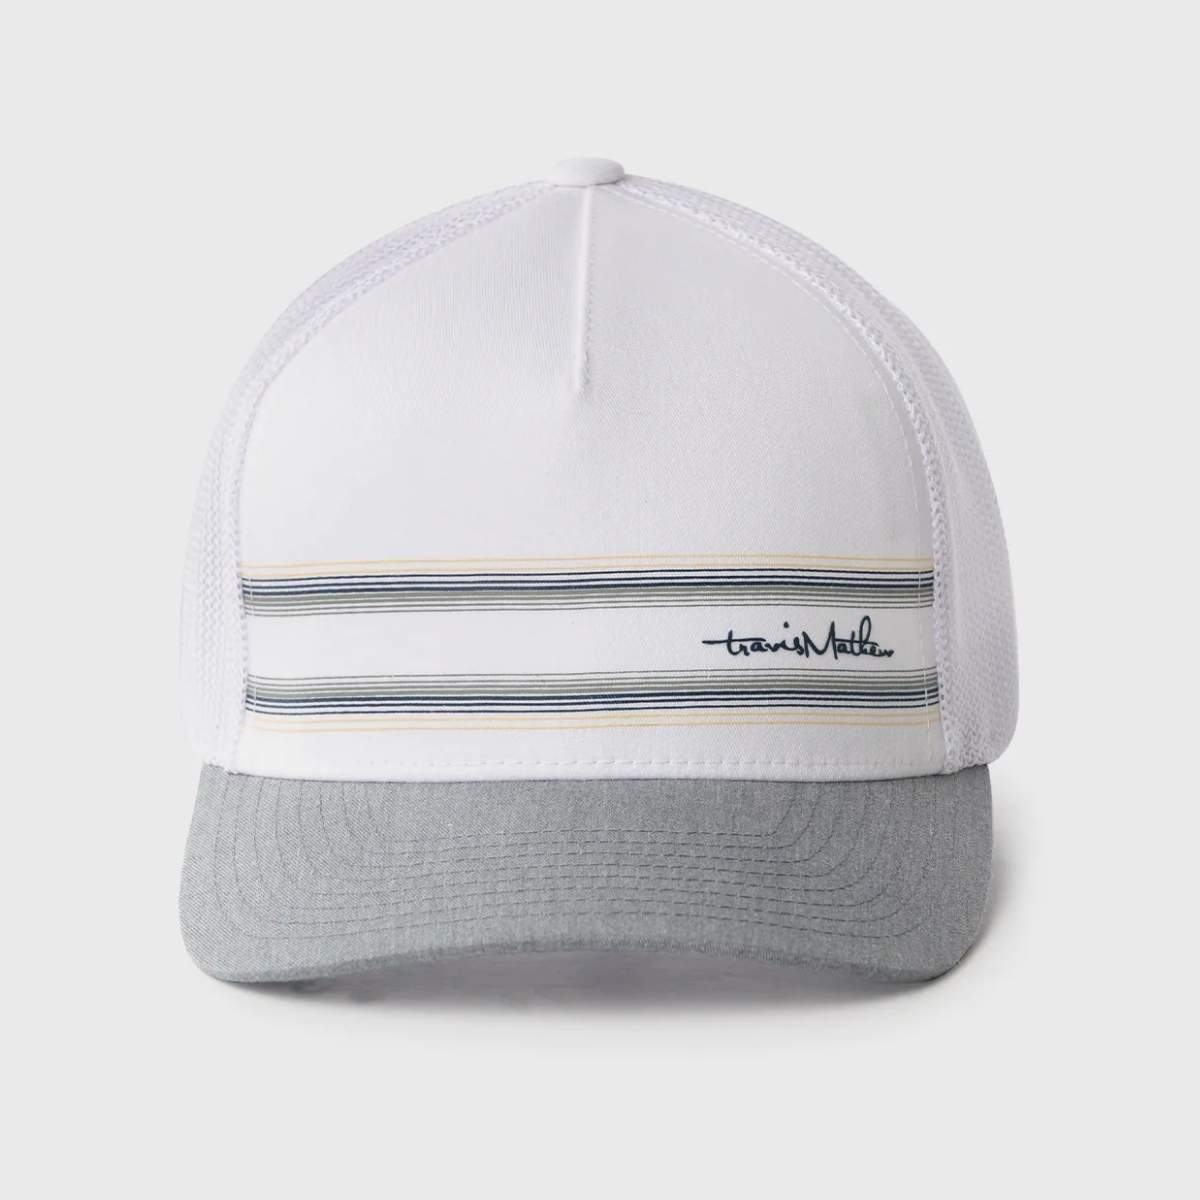 TravisMathew Toasted Fitted Hat